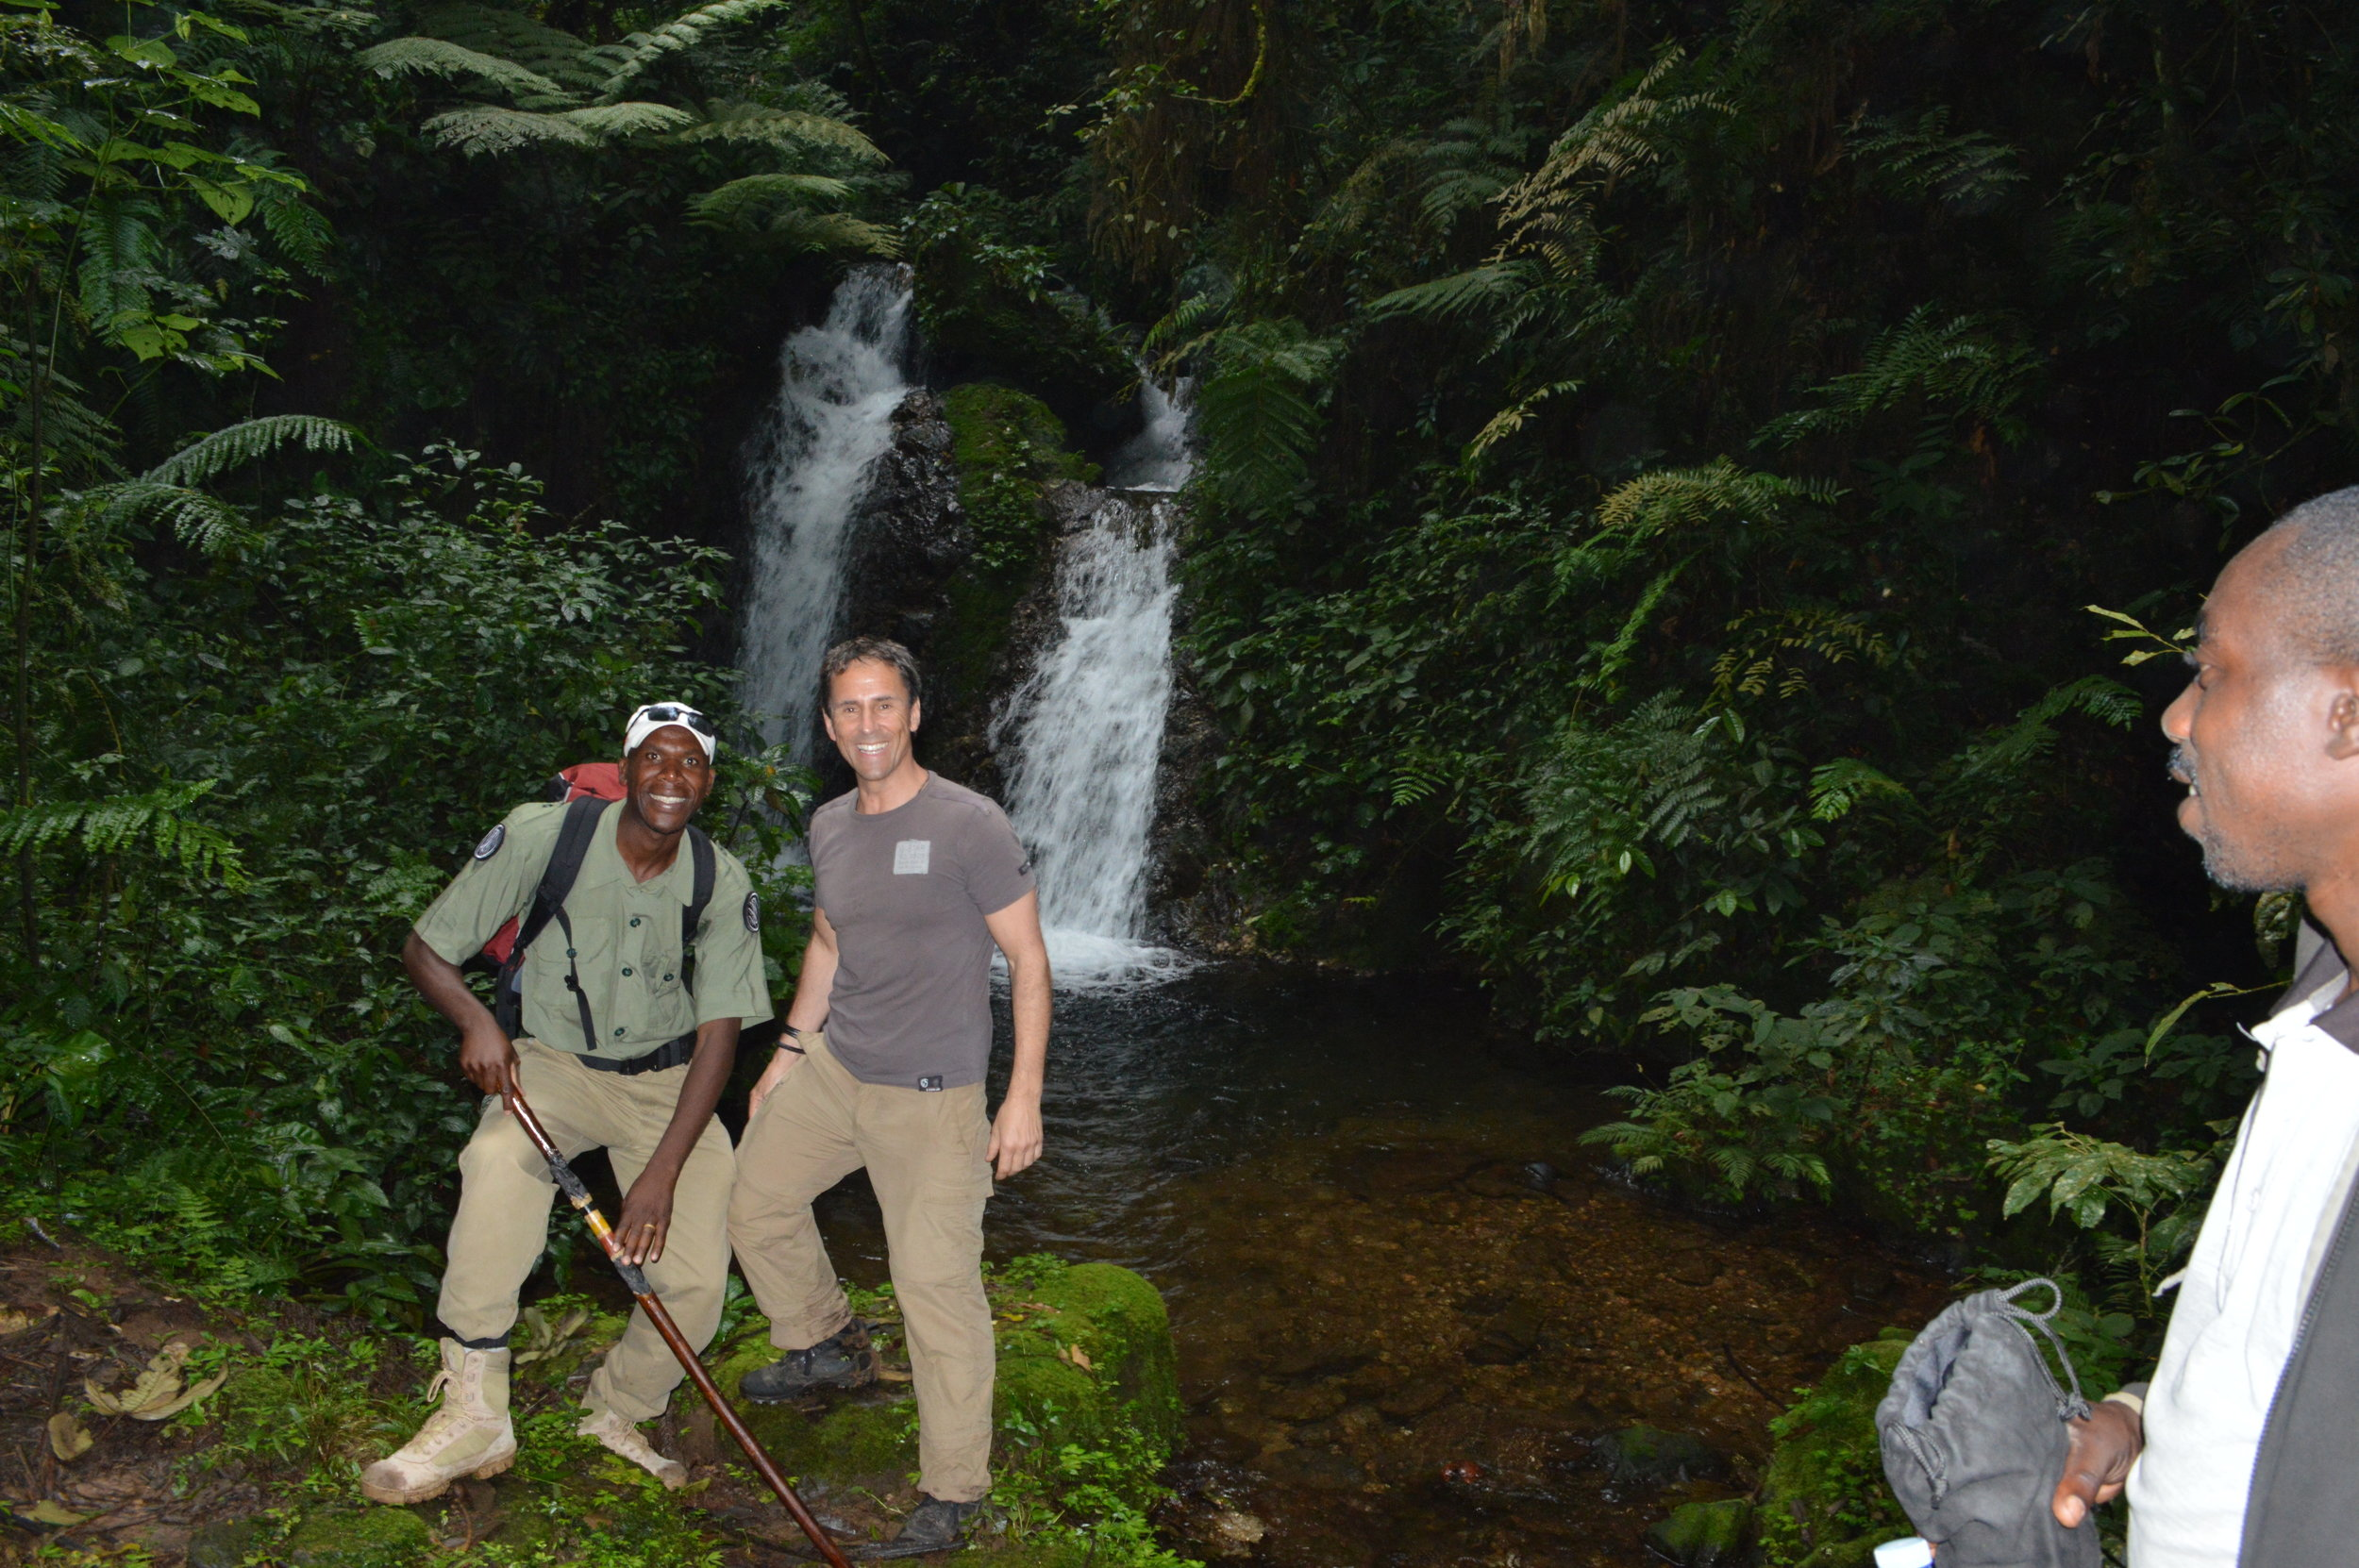 A forest adventure to Munyaga waterfall walk Bwindi impenetrable national park.